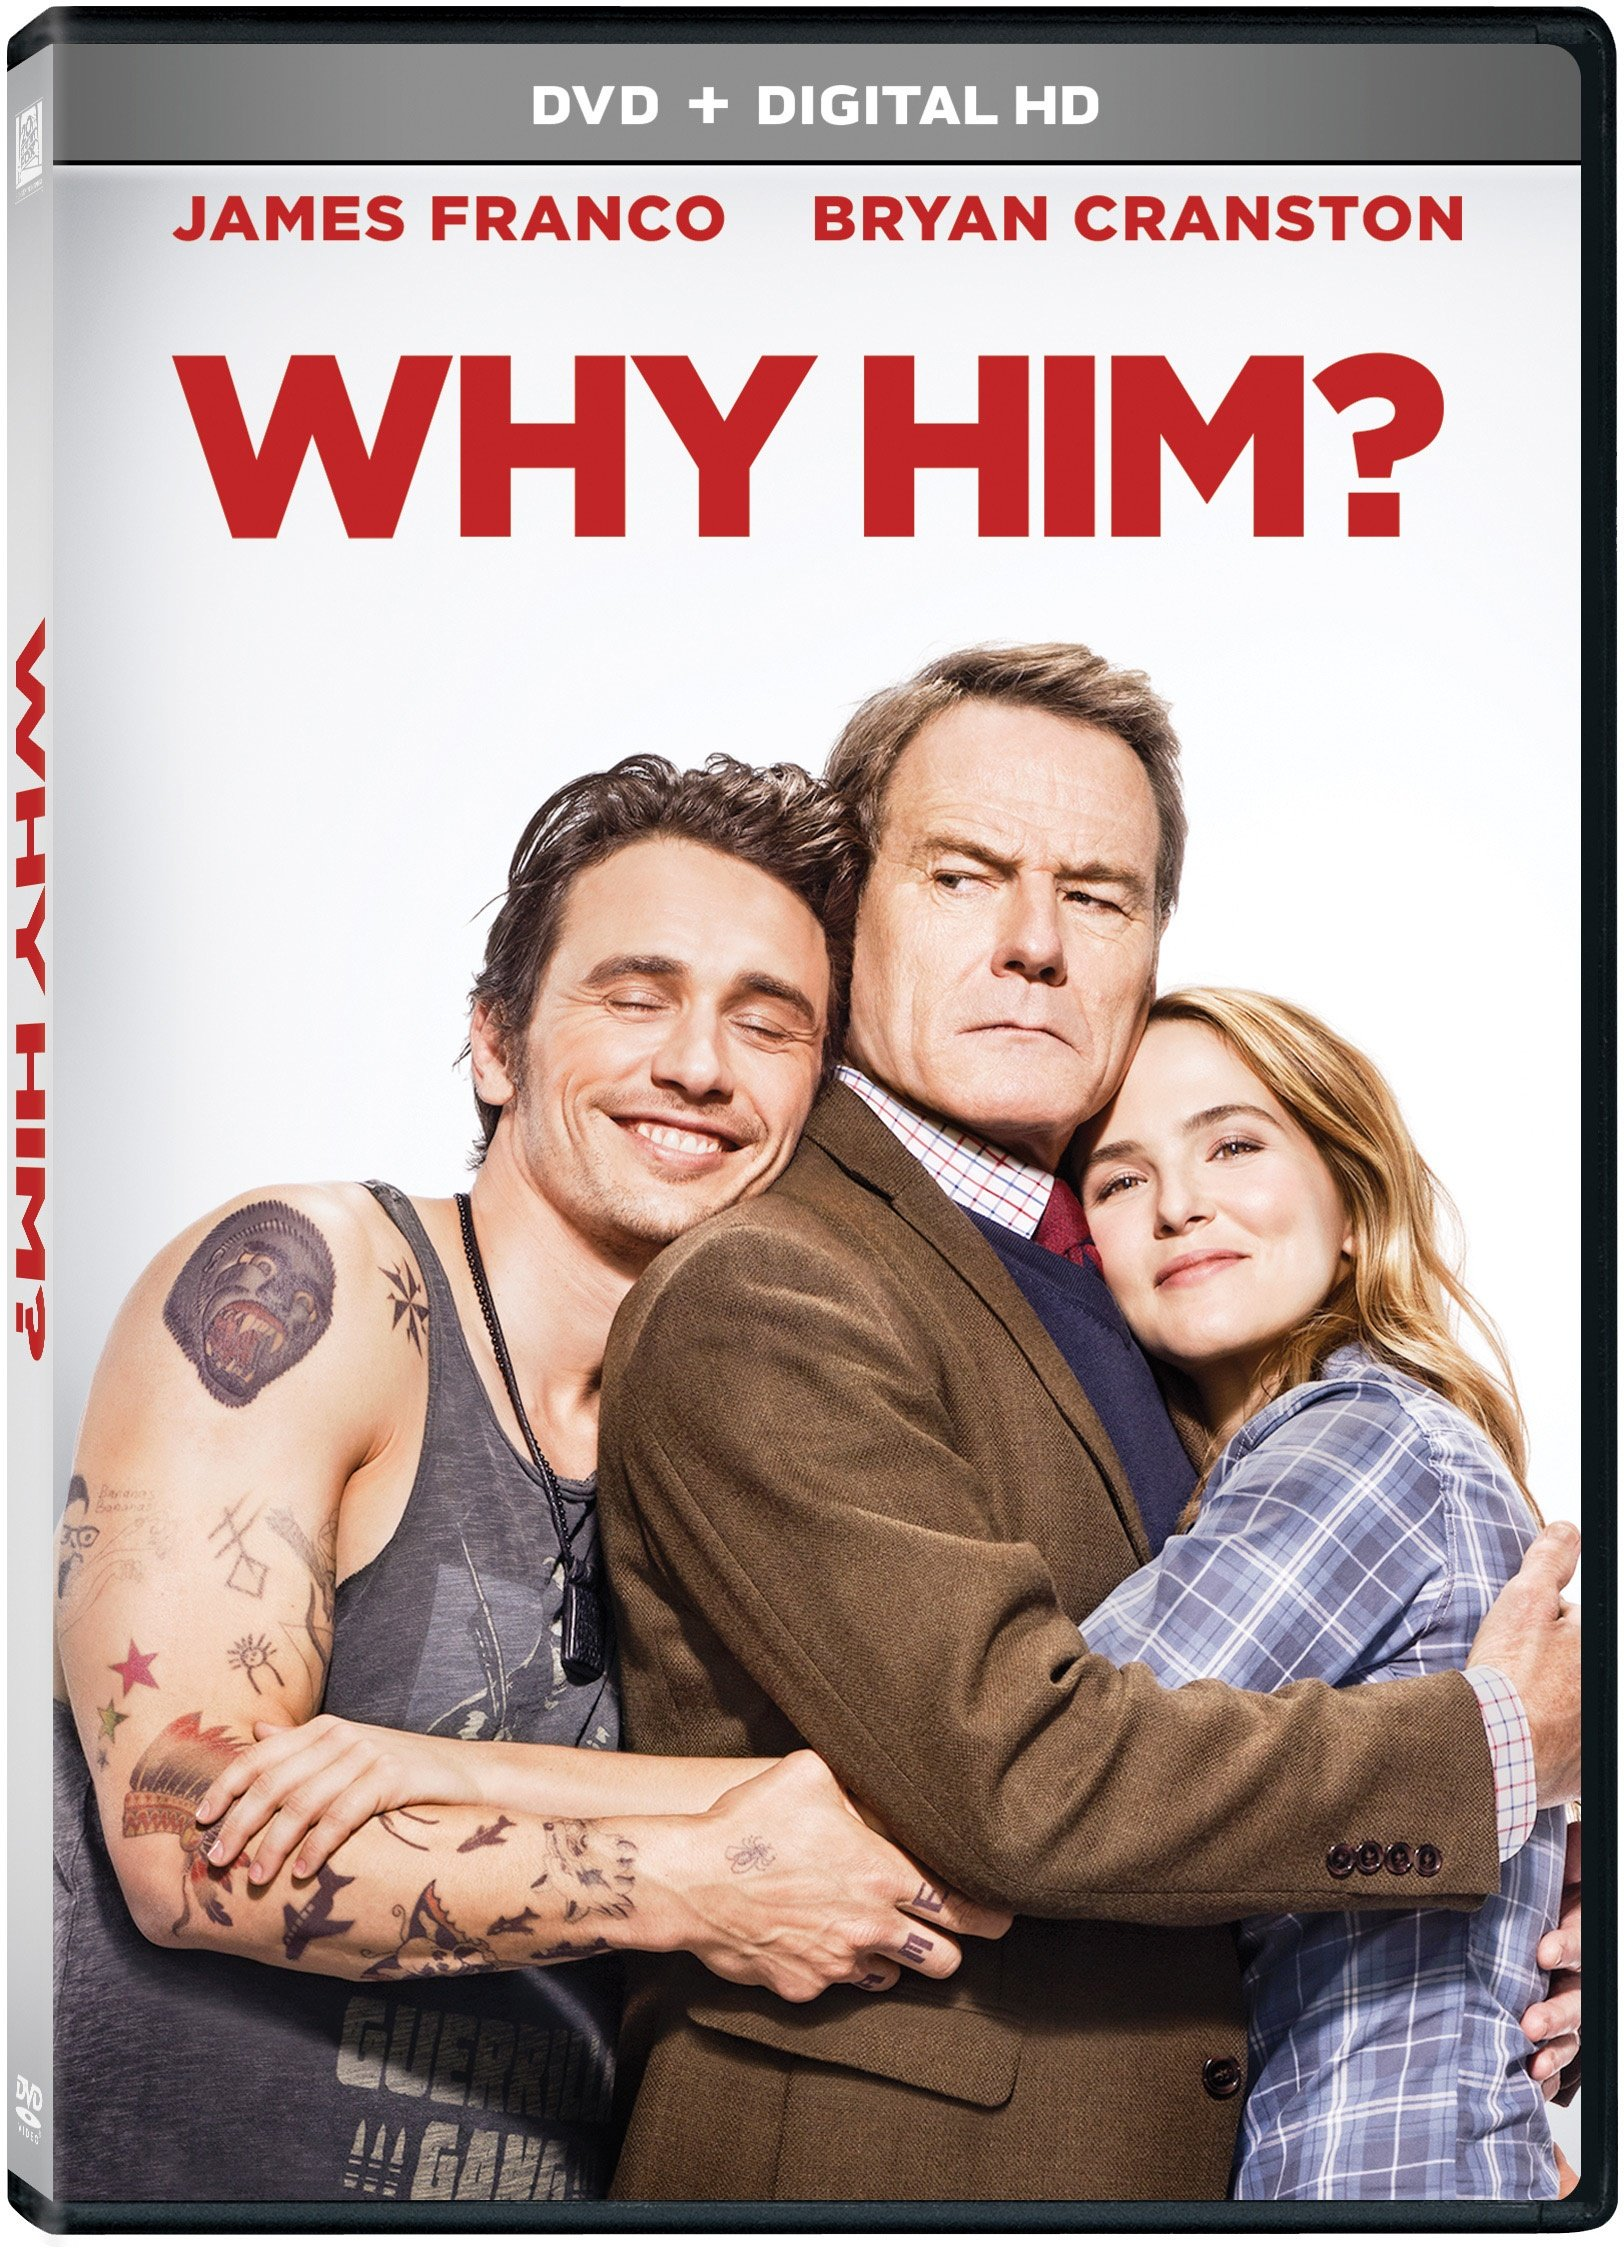 DVD : Why Him? (Digitally Mastered in HD, Widescreen, Dolby, AC-3, Dubbed)